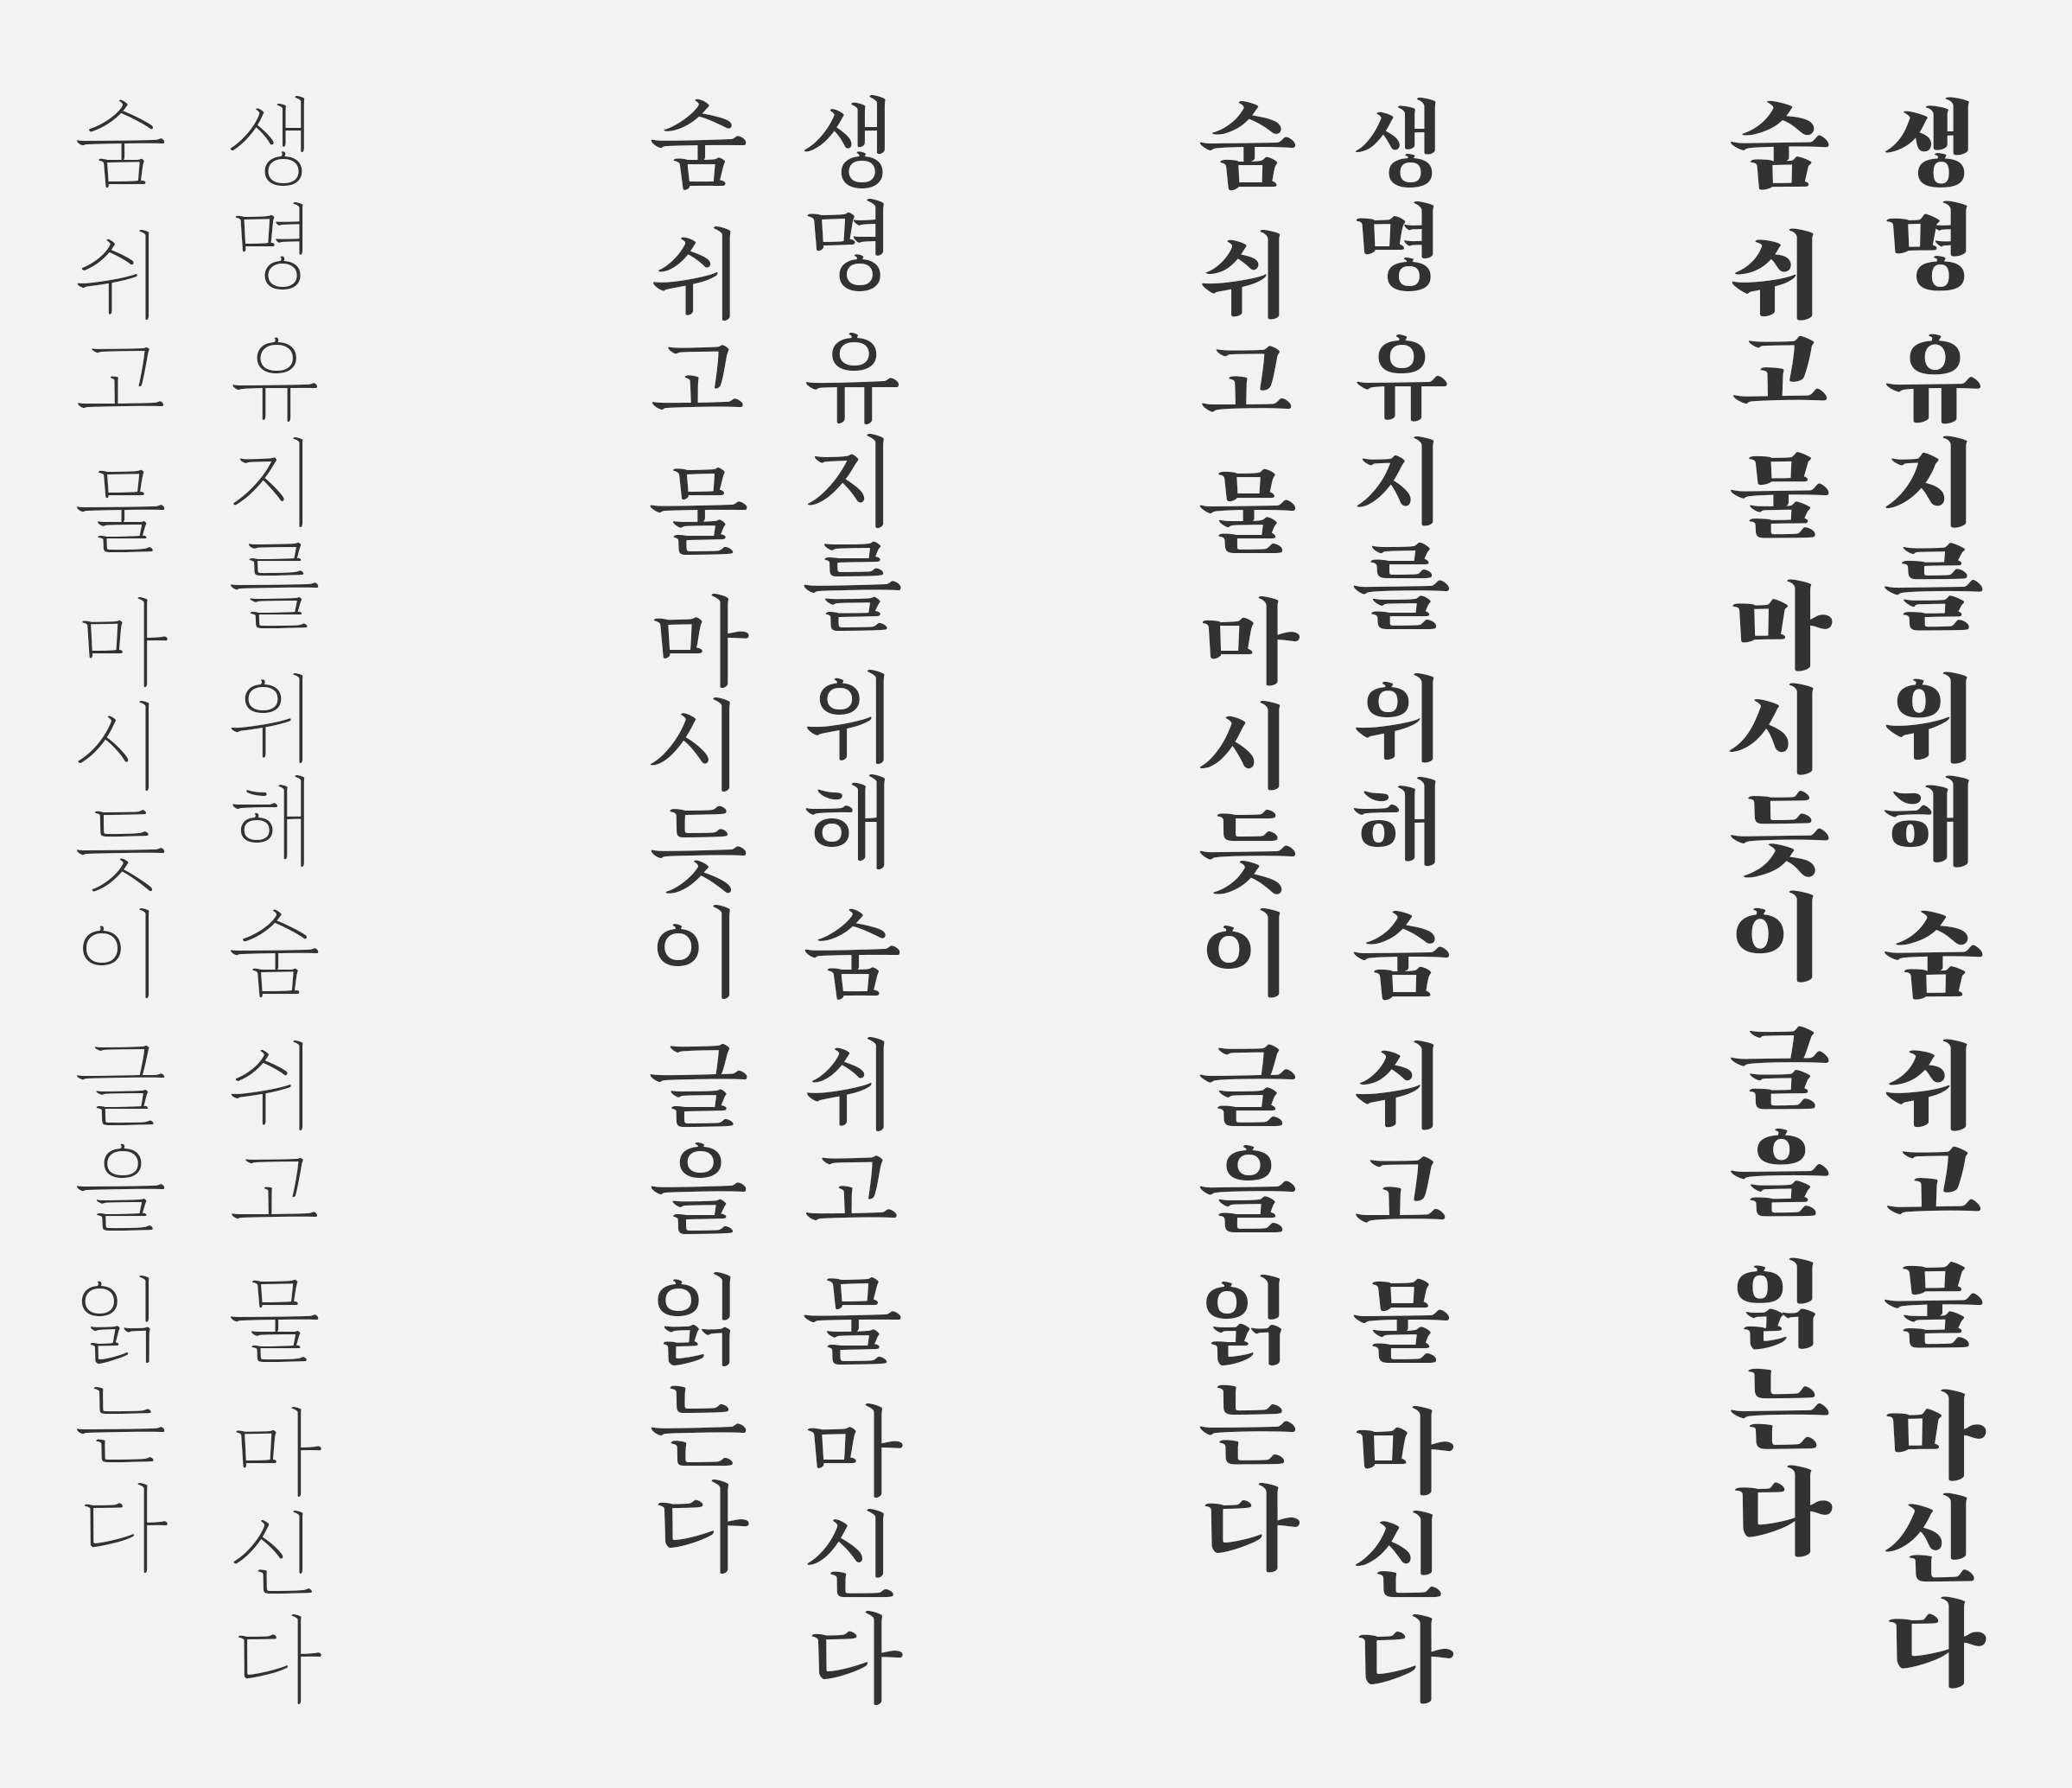 Baram Font Family, currently being designed by Lee Yongjae